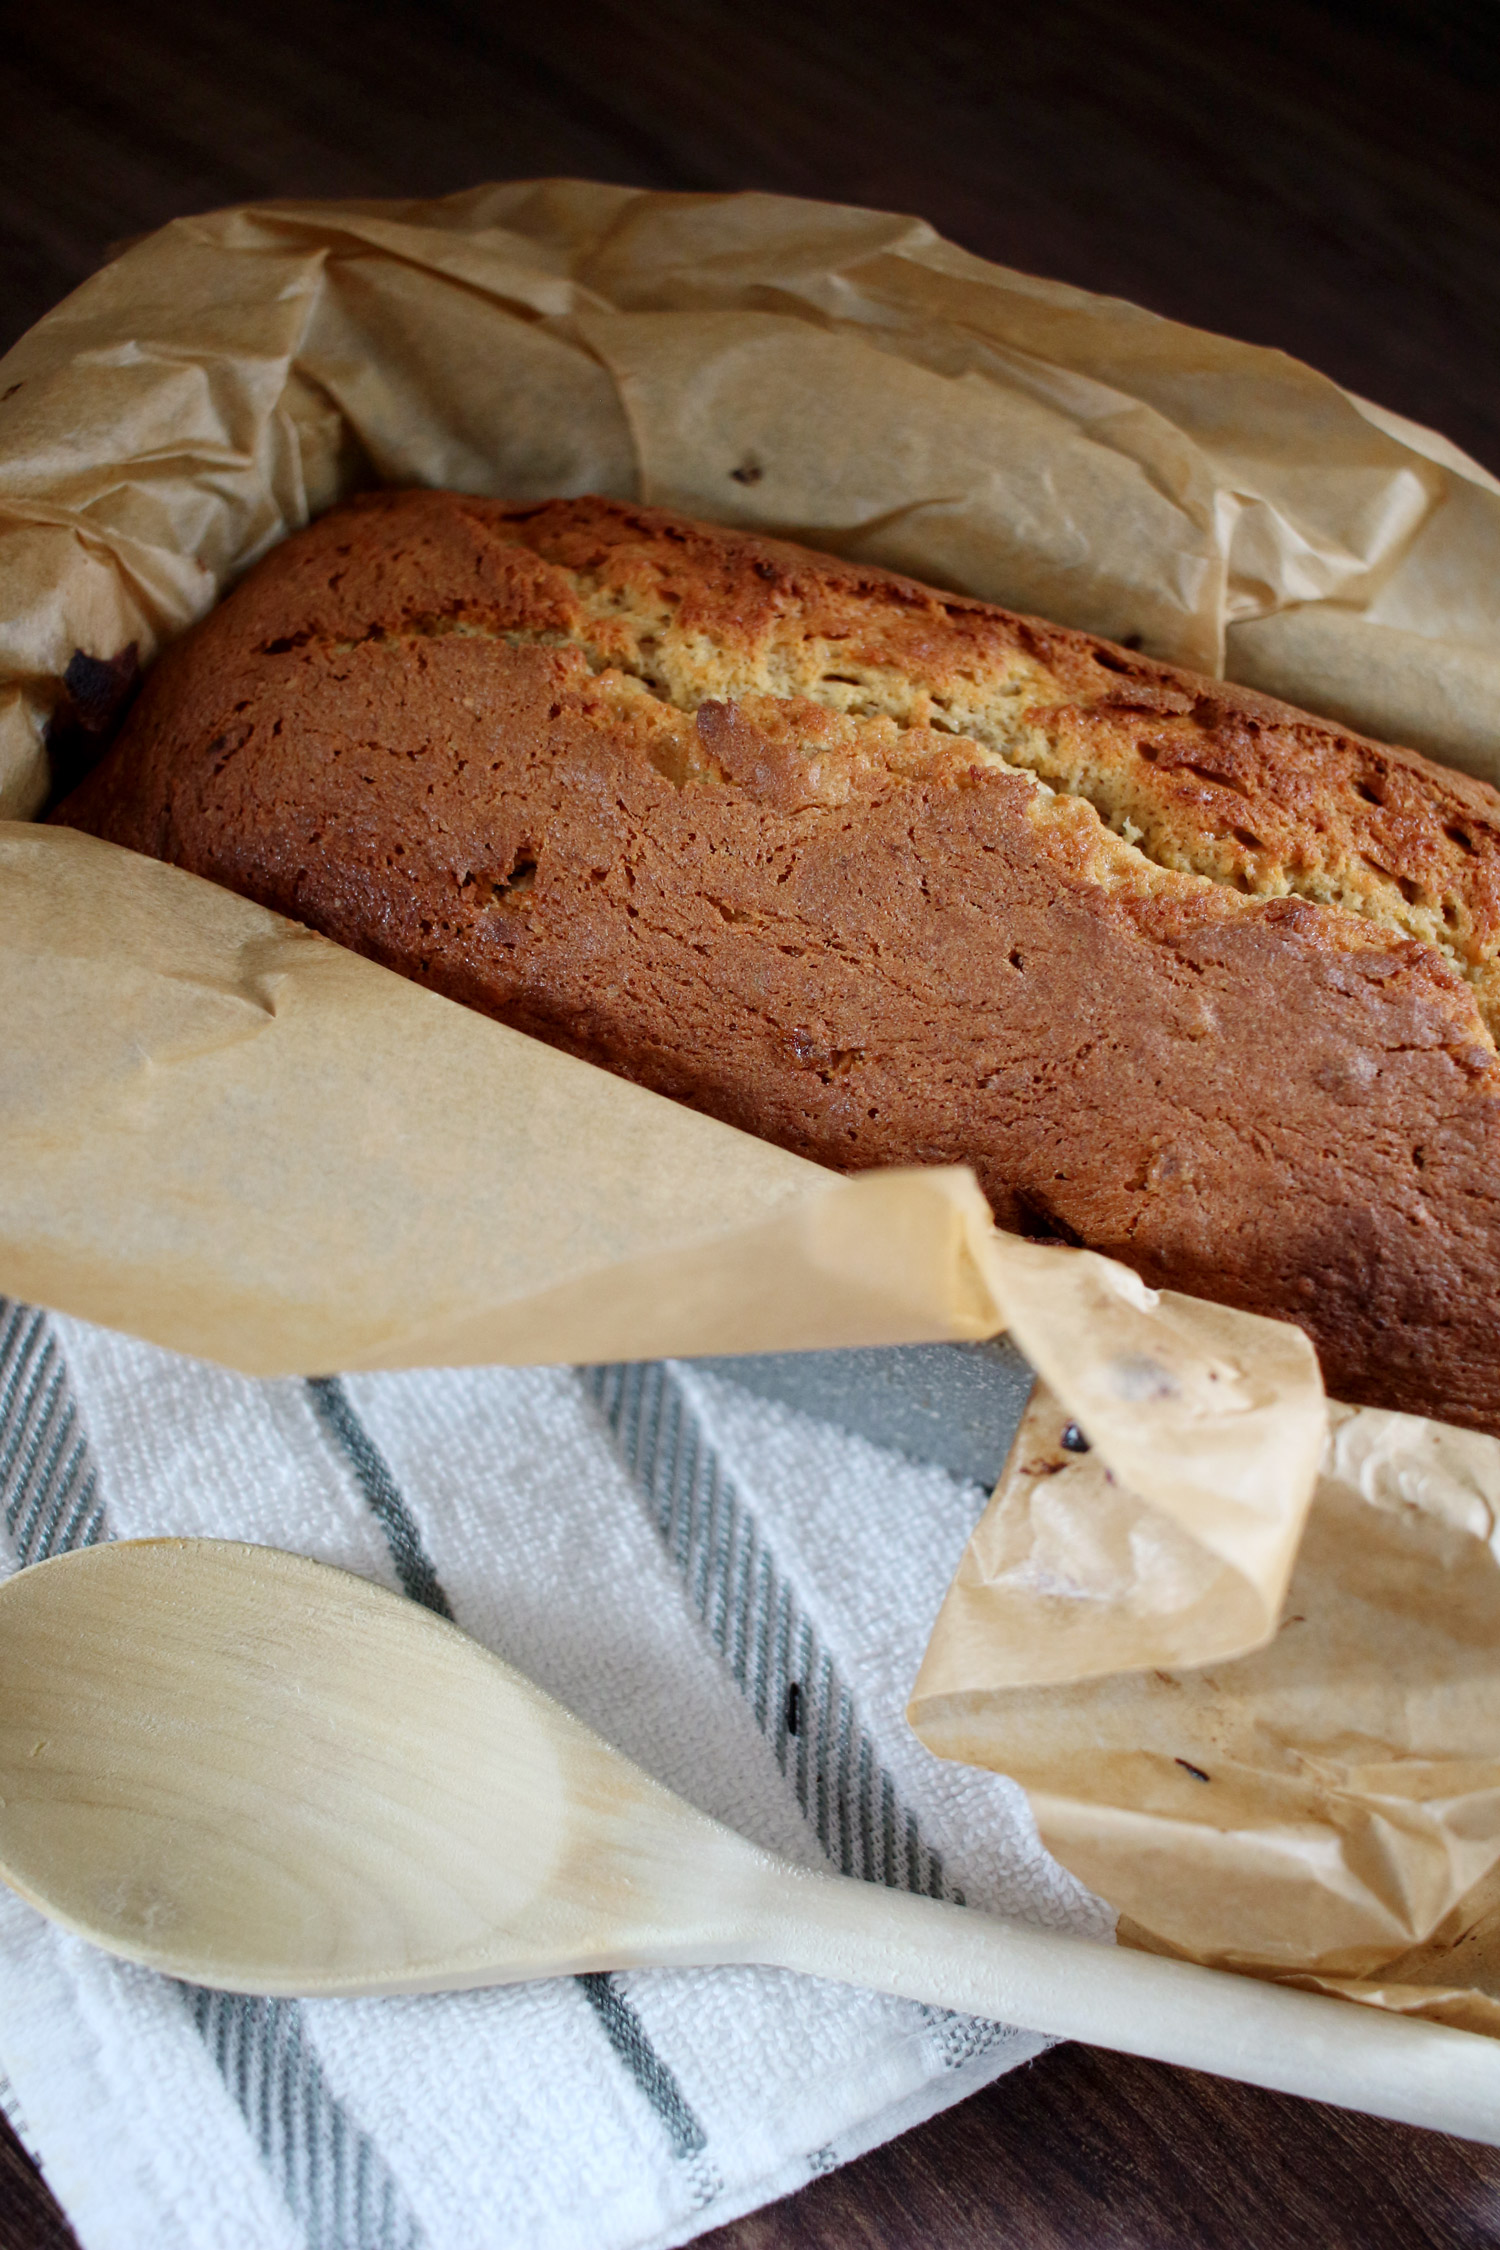 Biscoff-Banana-Bread-Recipe-Easy-Lotus-thelovecatsinc-1